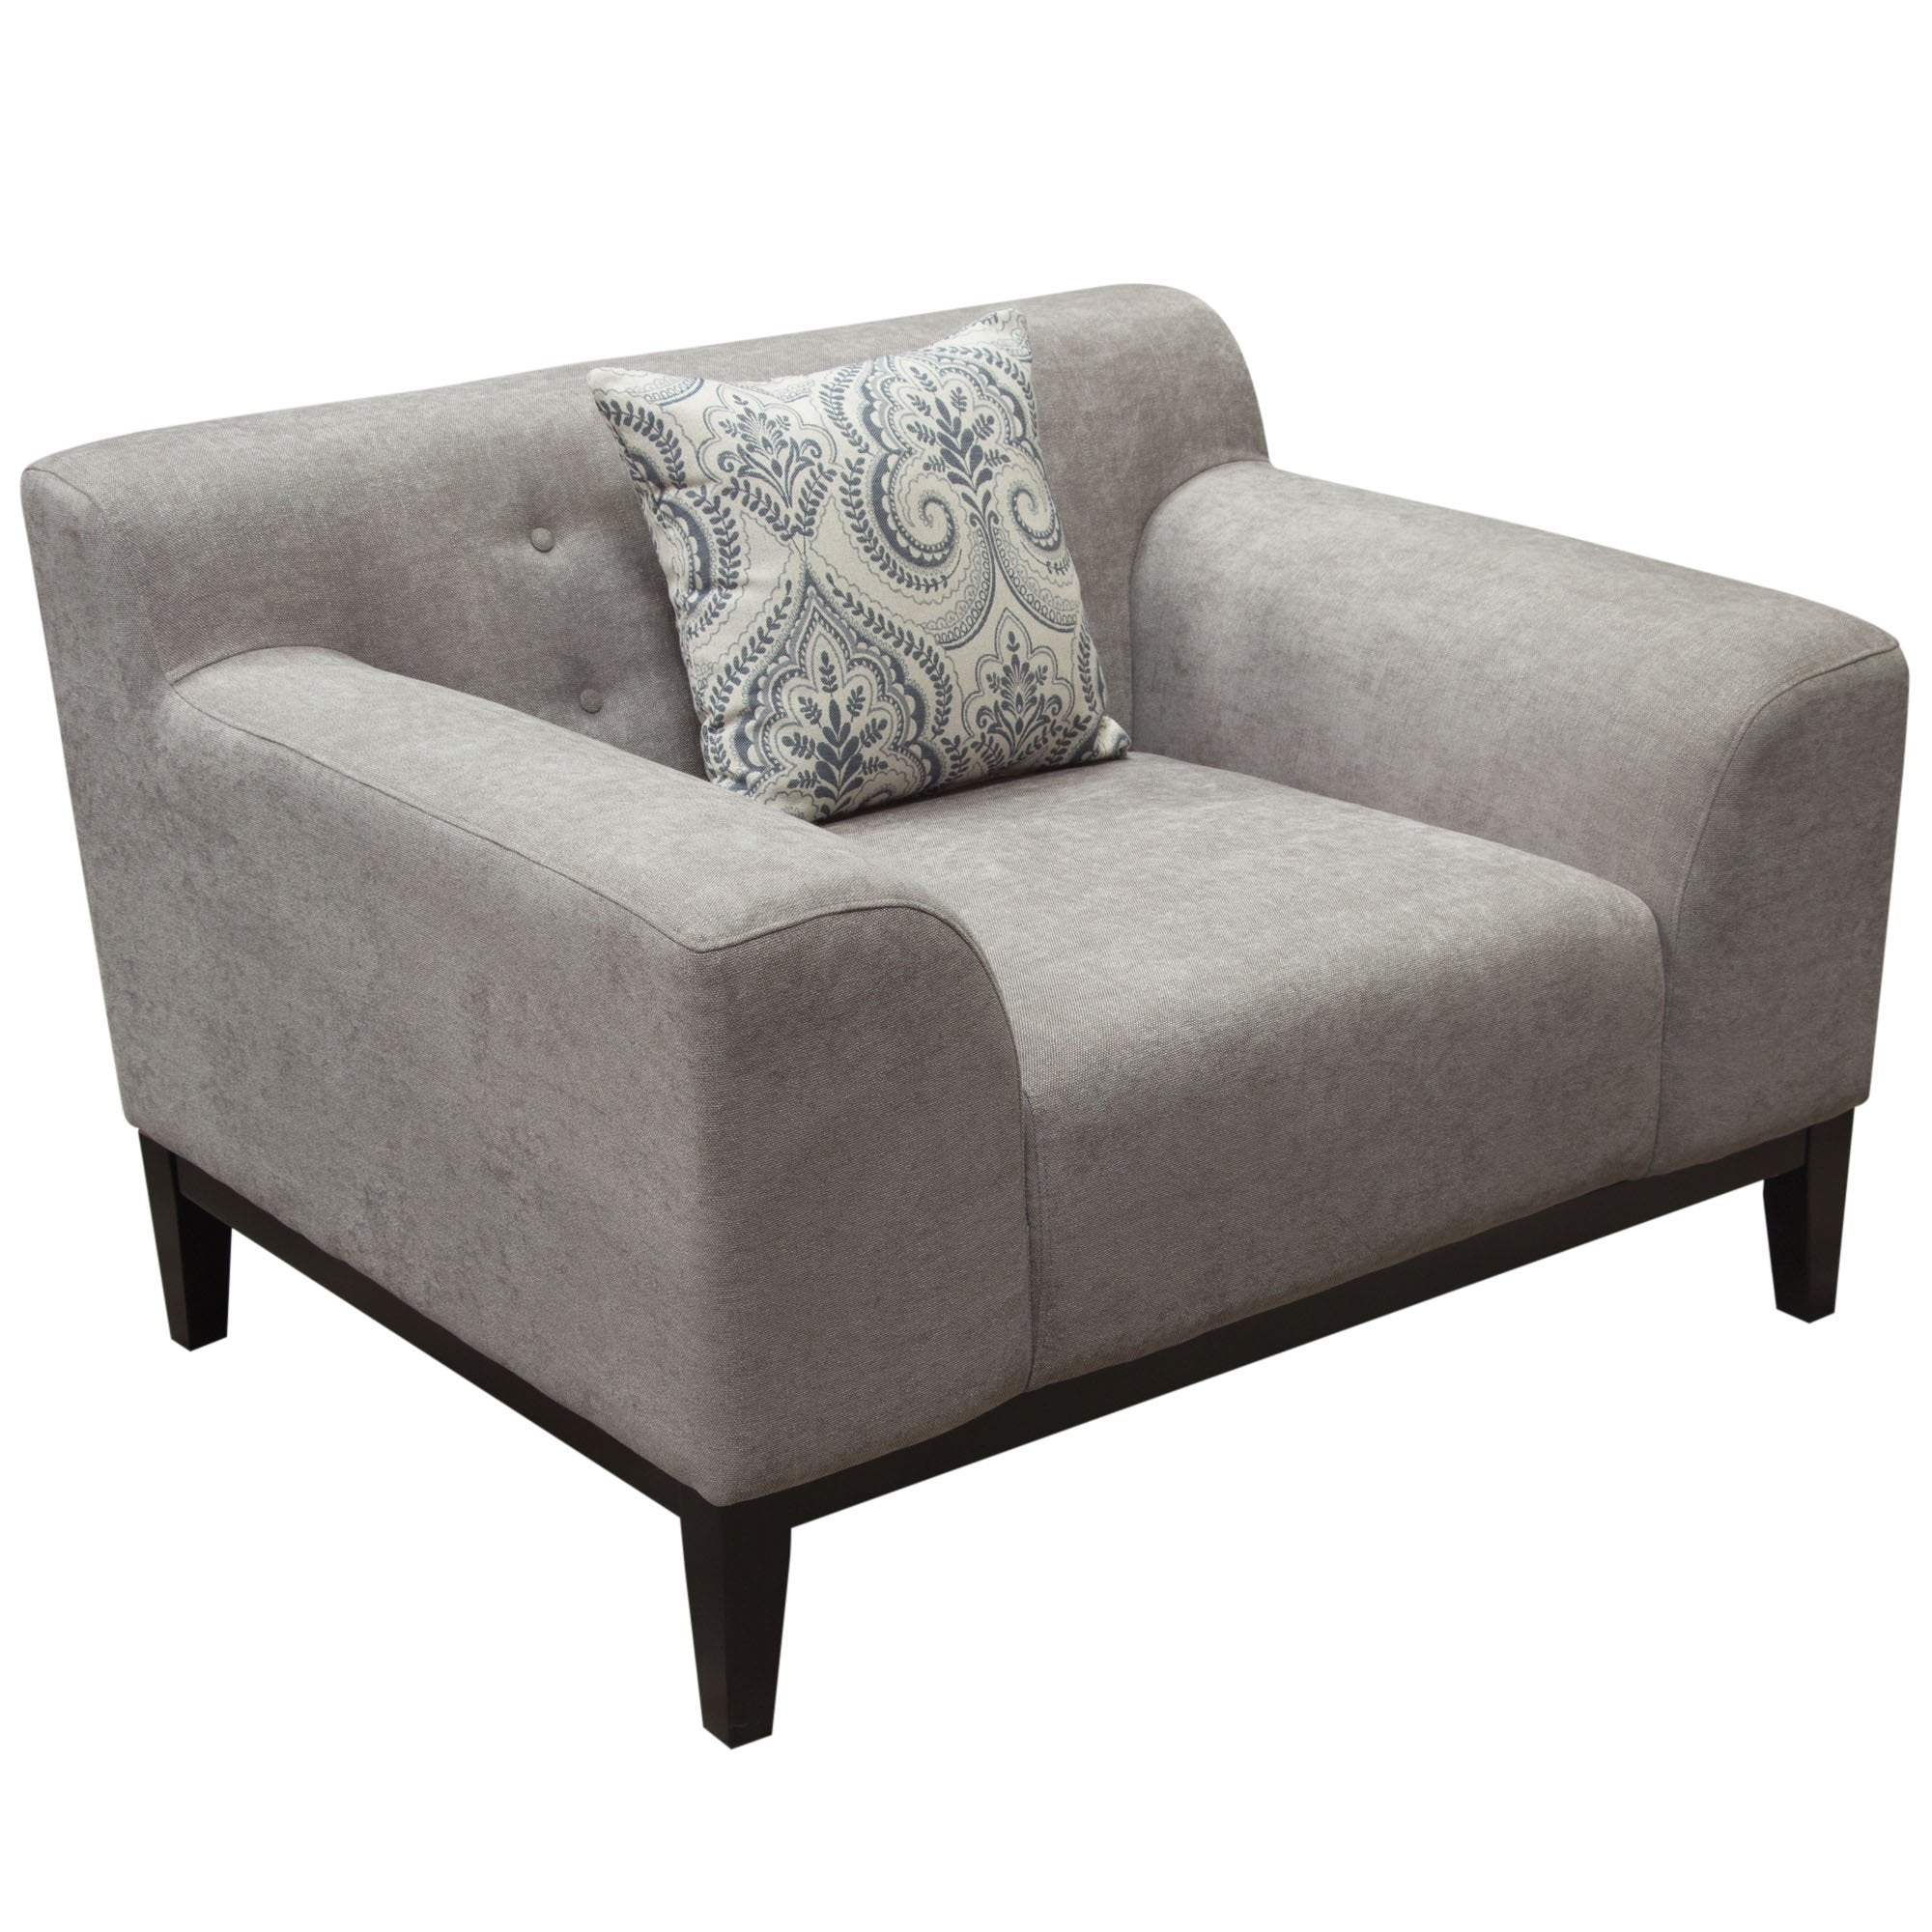 Marquee Tufted Back Chair in Moonstone